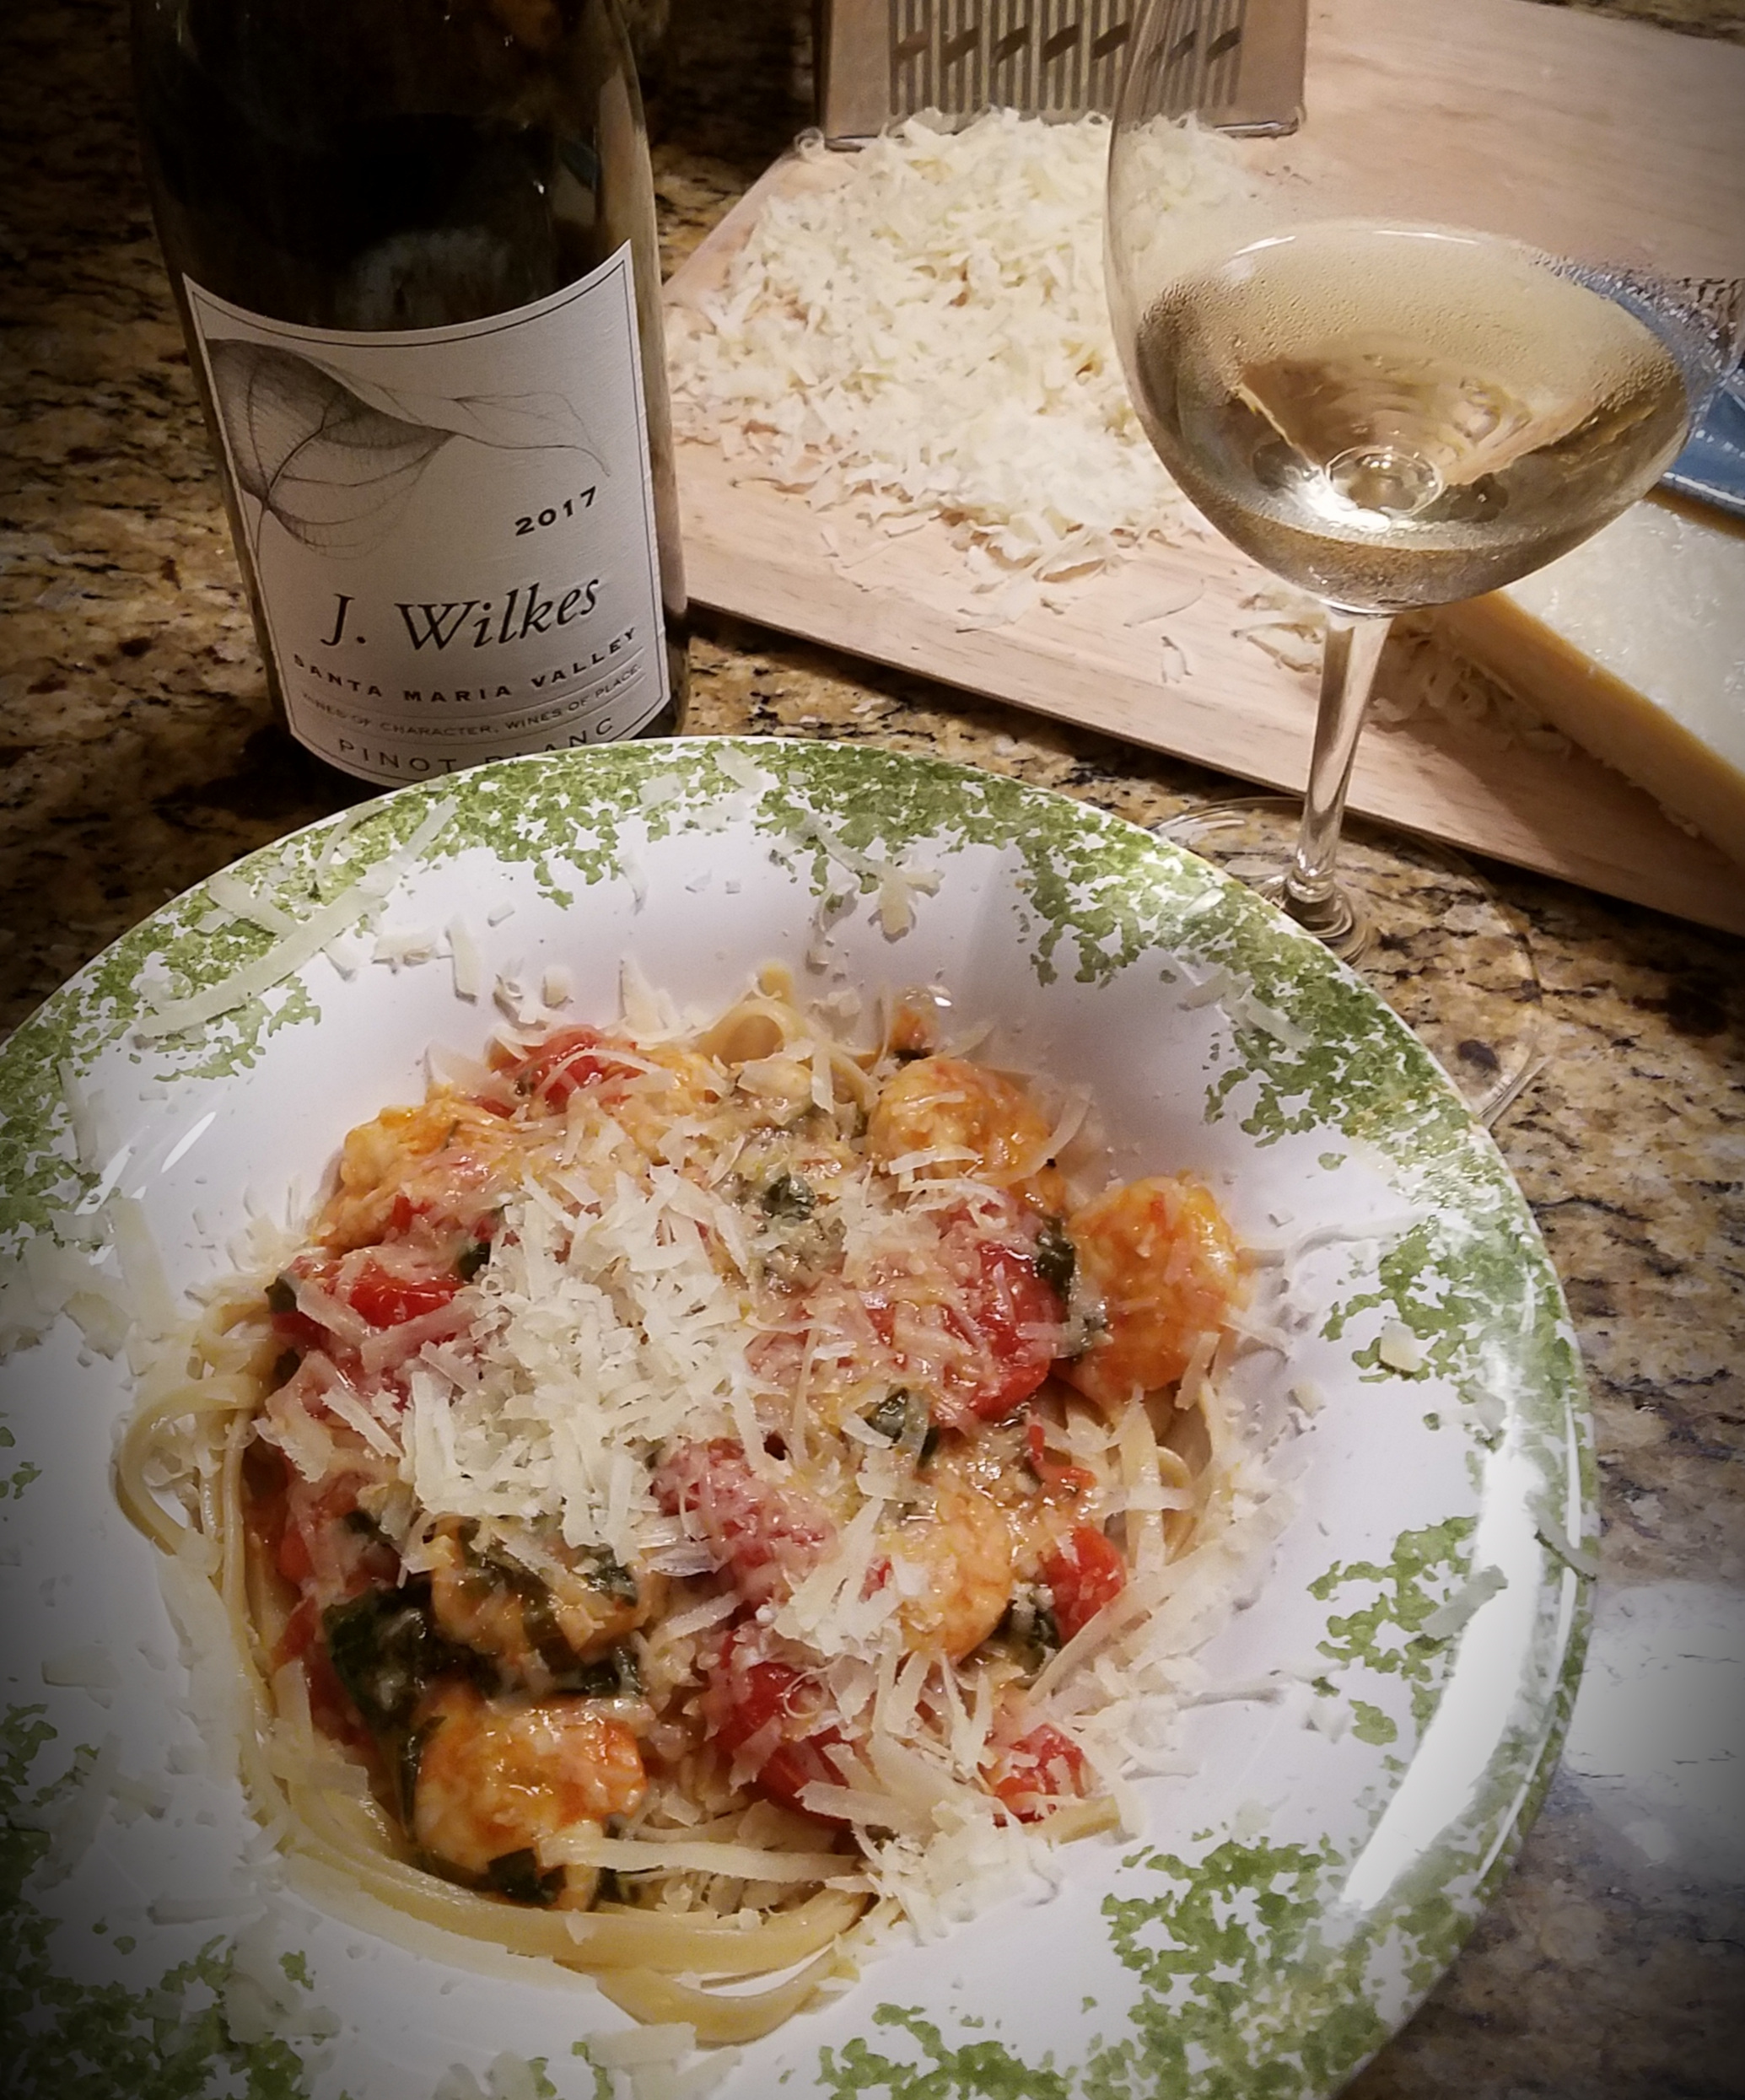 Summer Shrimp Scampi paired with J. Wilkes Pinot Blanc from Santa Maria Valley, California